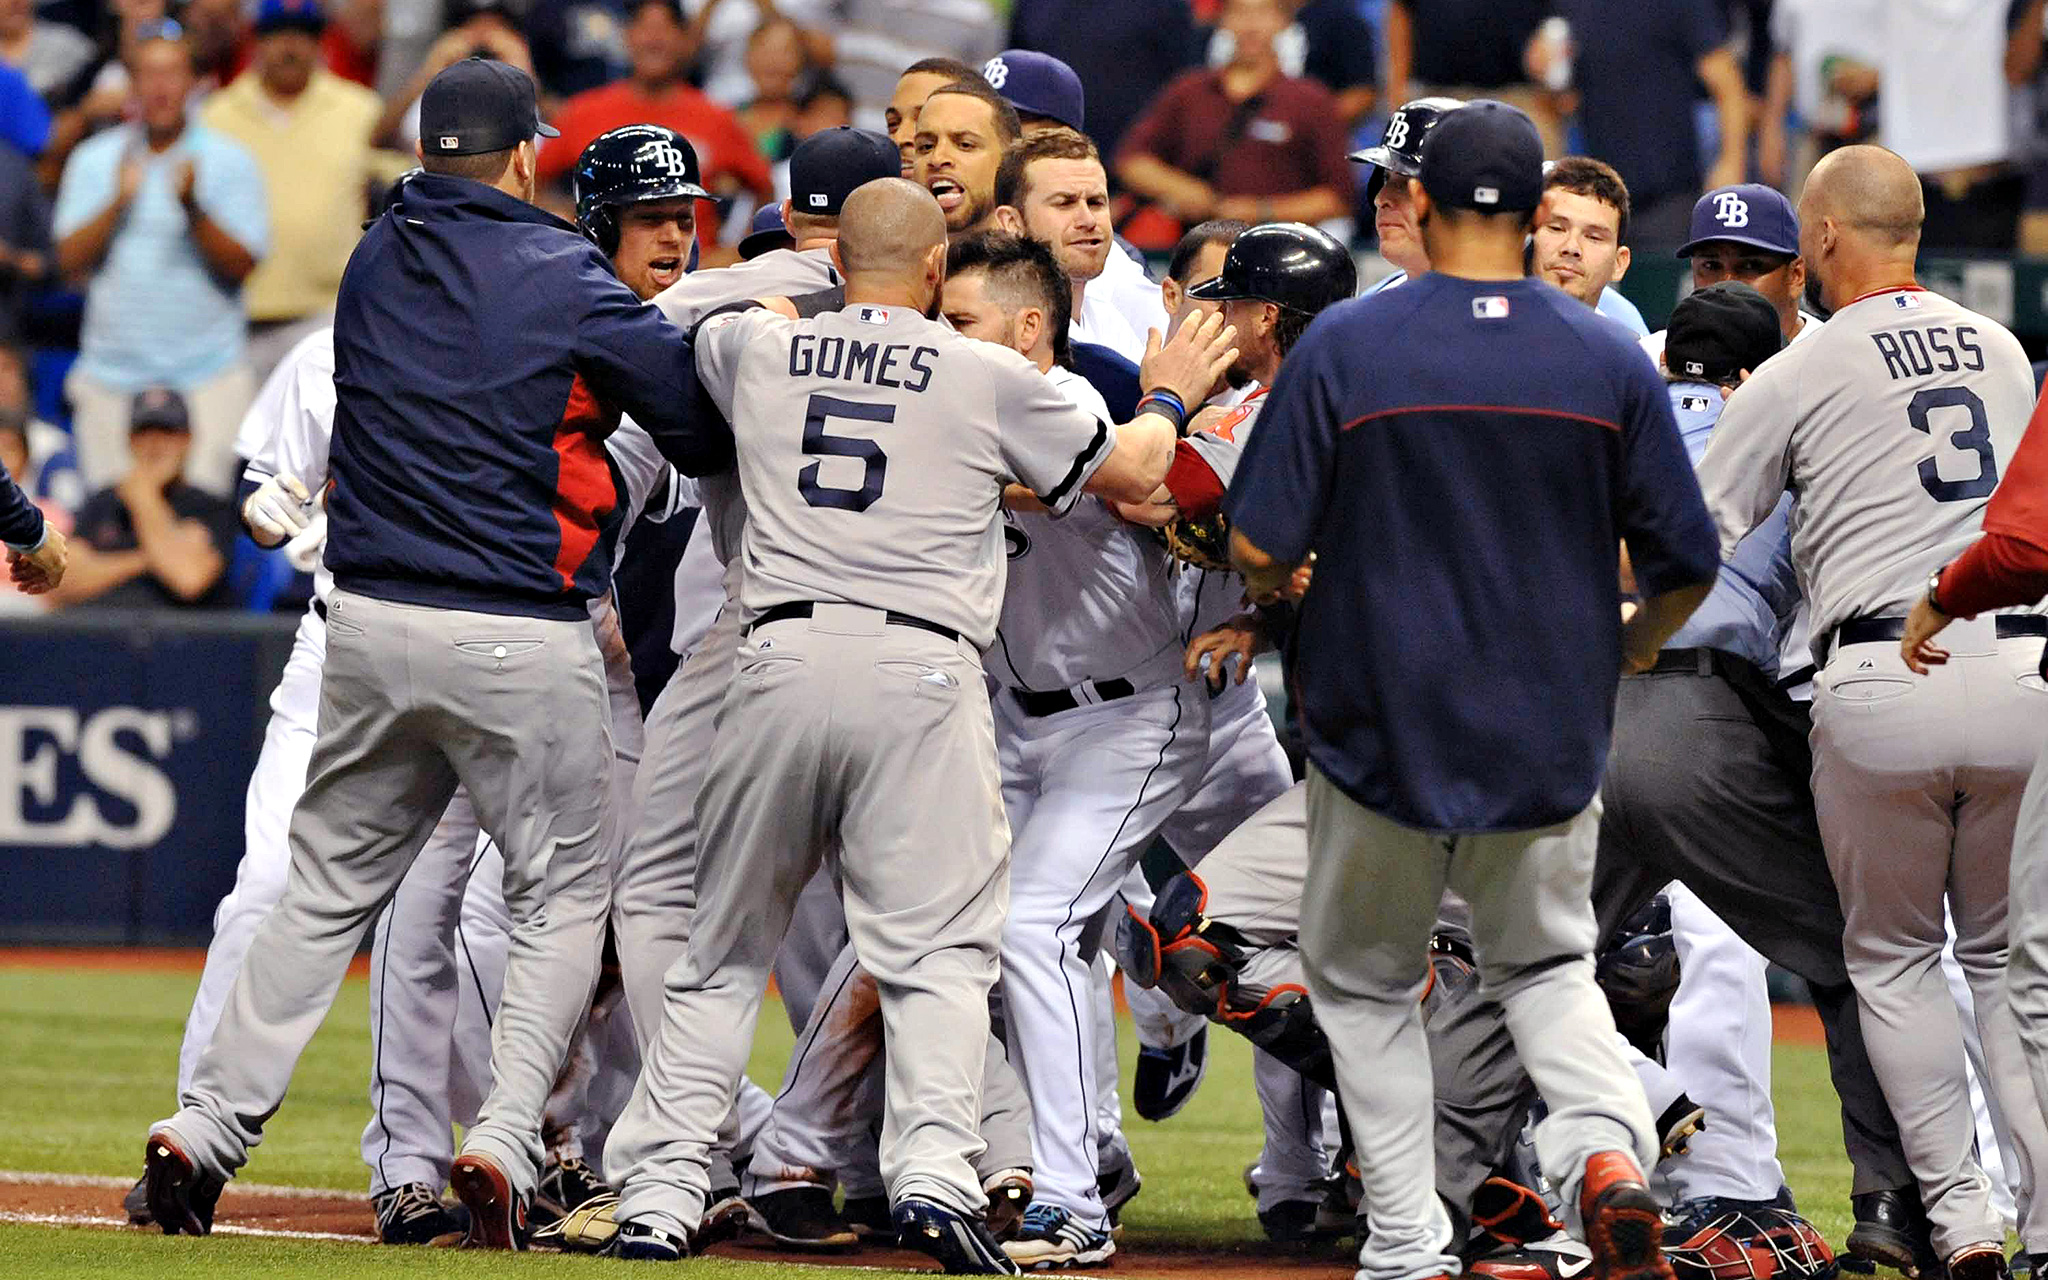 Benches clear in win over Rays